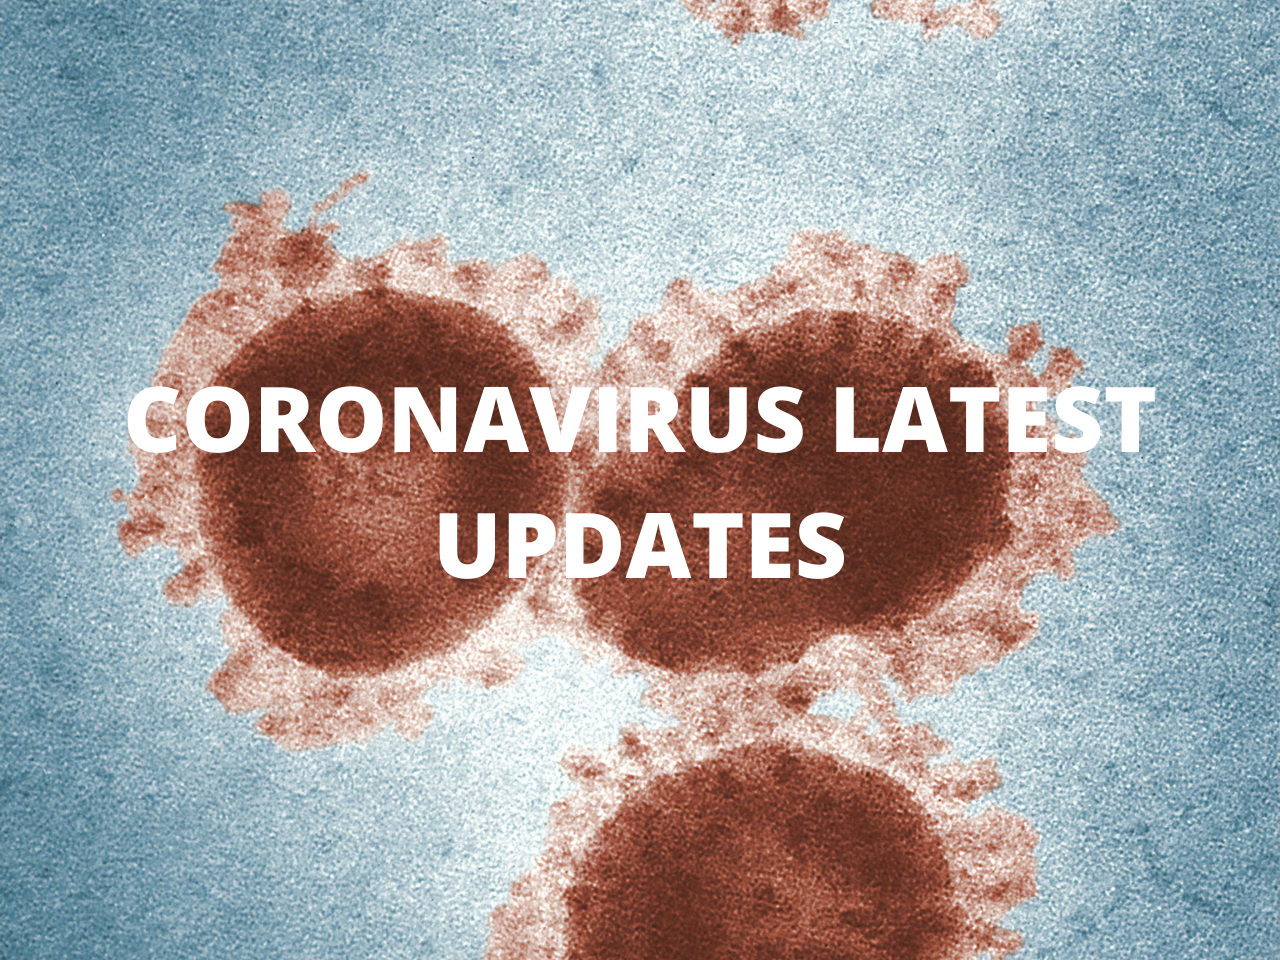 CORONAVIRUS LATEST UPDATES